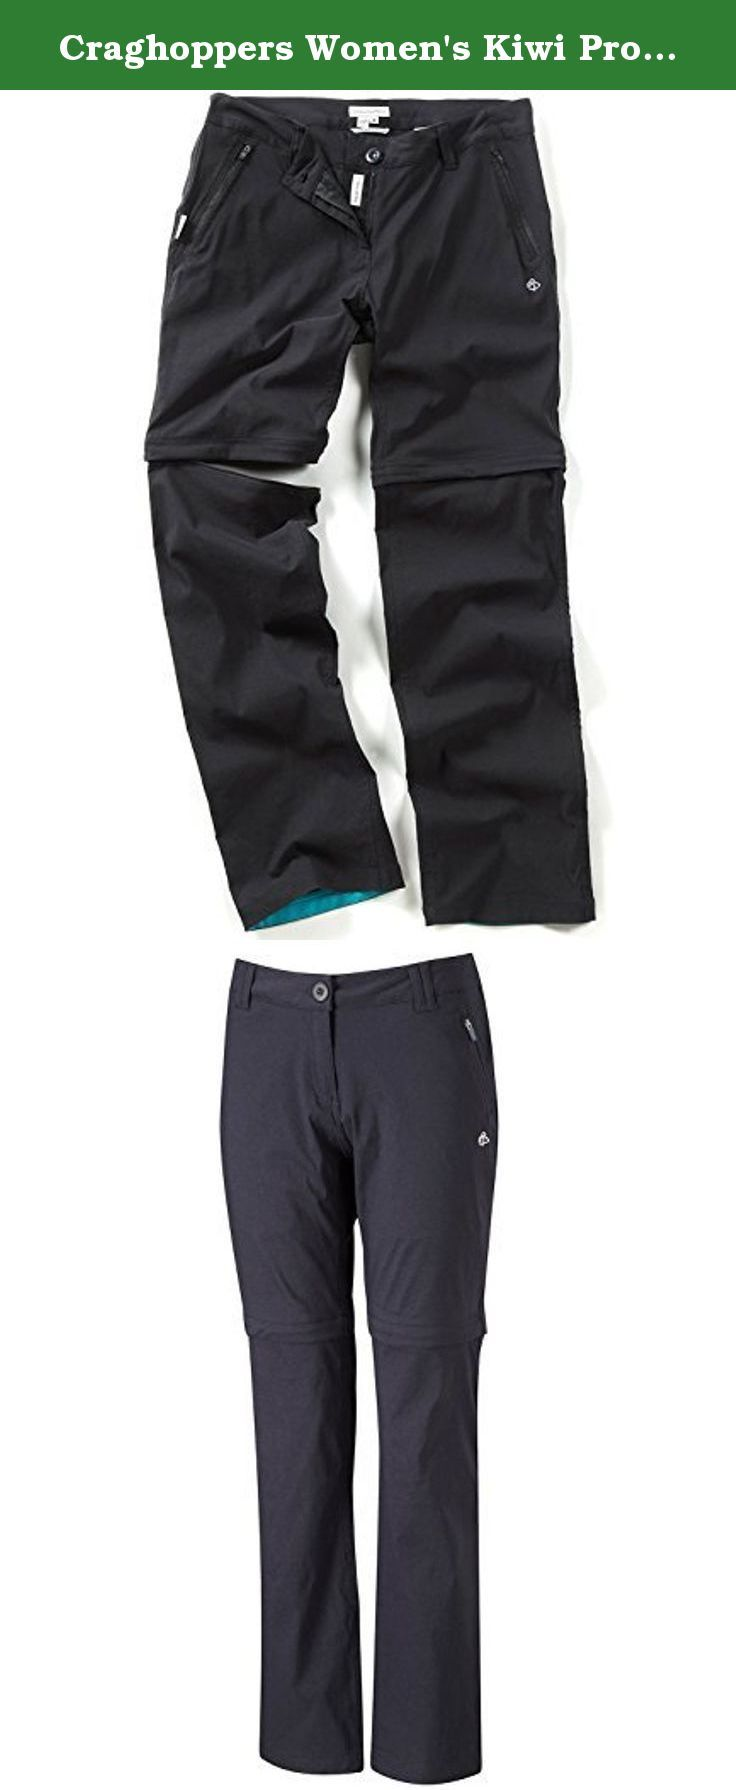 Craghoppers Women's Kiwi Pro Convertible Walking Trousers 12 US | Long Black. Fabric Technologies Stretch - Available as 2 & 4 Way Stretch To Allow Unrestricted Movement Stretch fabrics enhance comfort and facilitate a greater degree of movement, improve the fit and maximise easy care/minimum iron attributes. A tighter weave is available when used in conjunction with other fabric technologies such of waterproof, bug repellent and sun-protective garments. SmartDry - Featuring A Water…